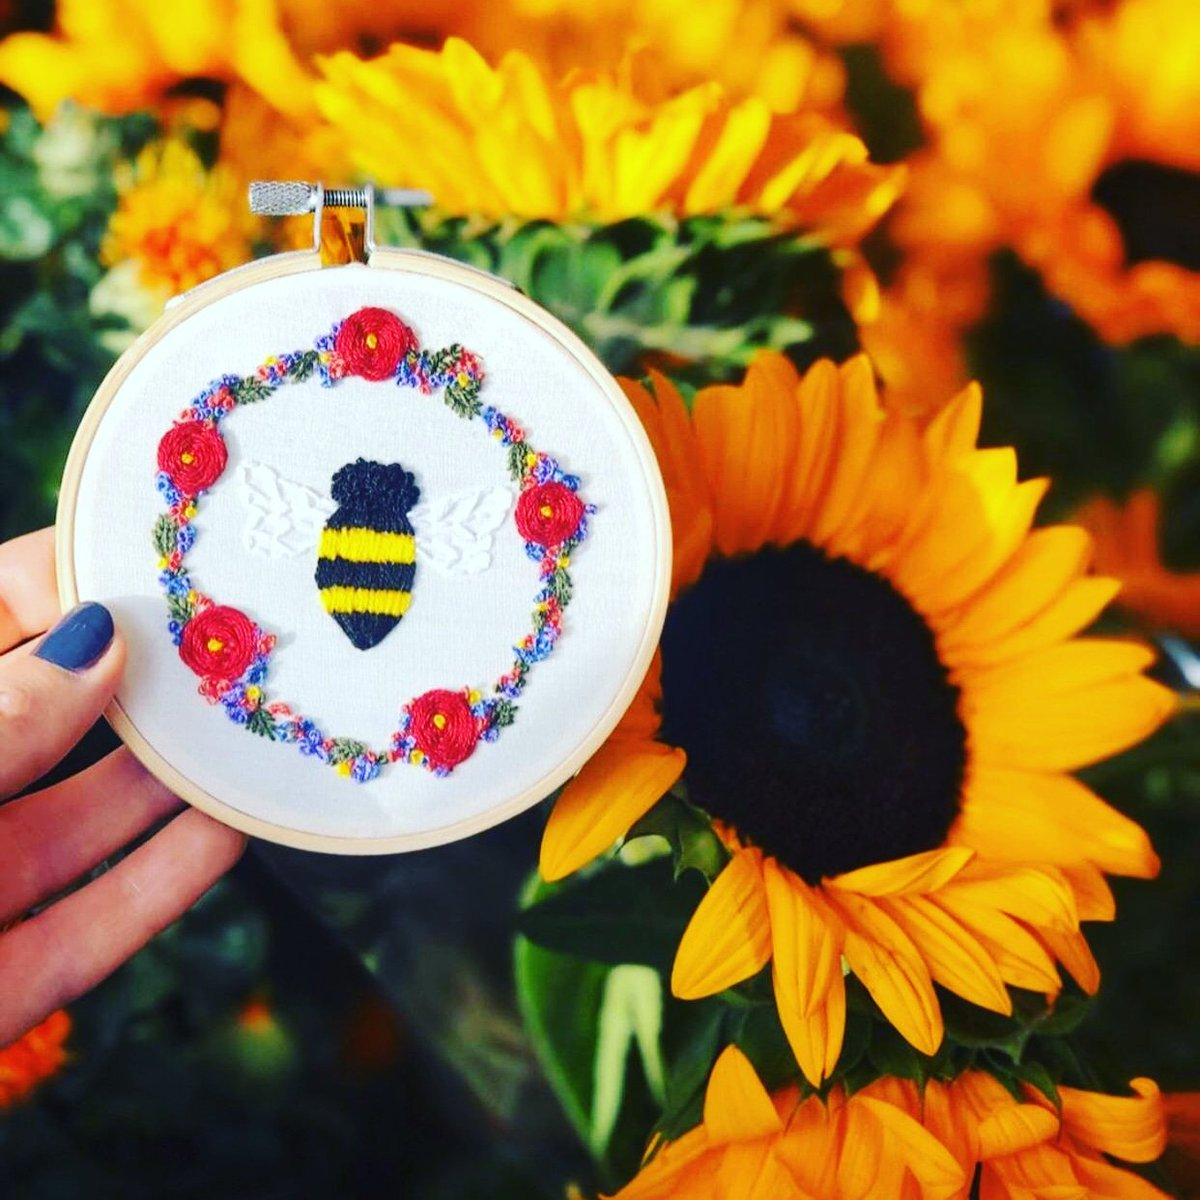 Another prize for upcoming #savejenny raffle! Thank you @BrydieAnnM for your stunning donation #hoop #beehappy #bee